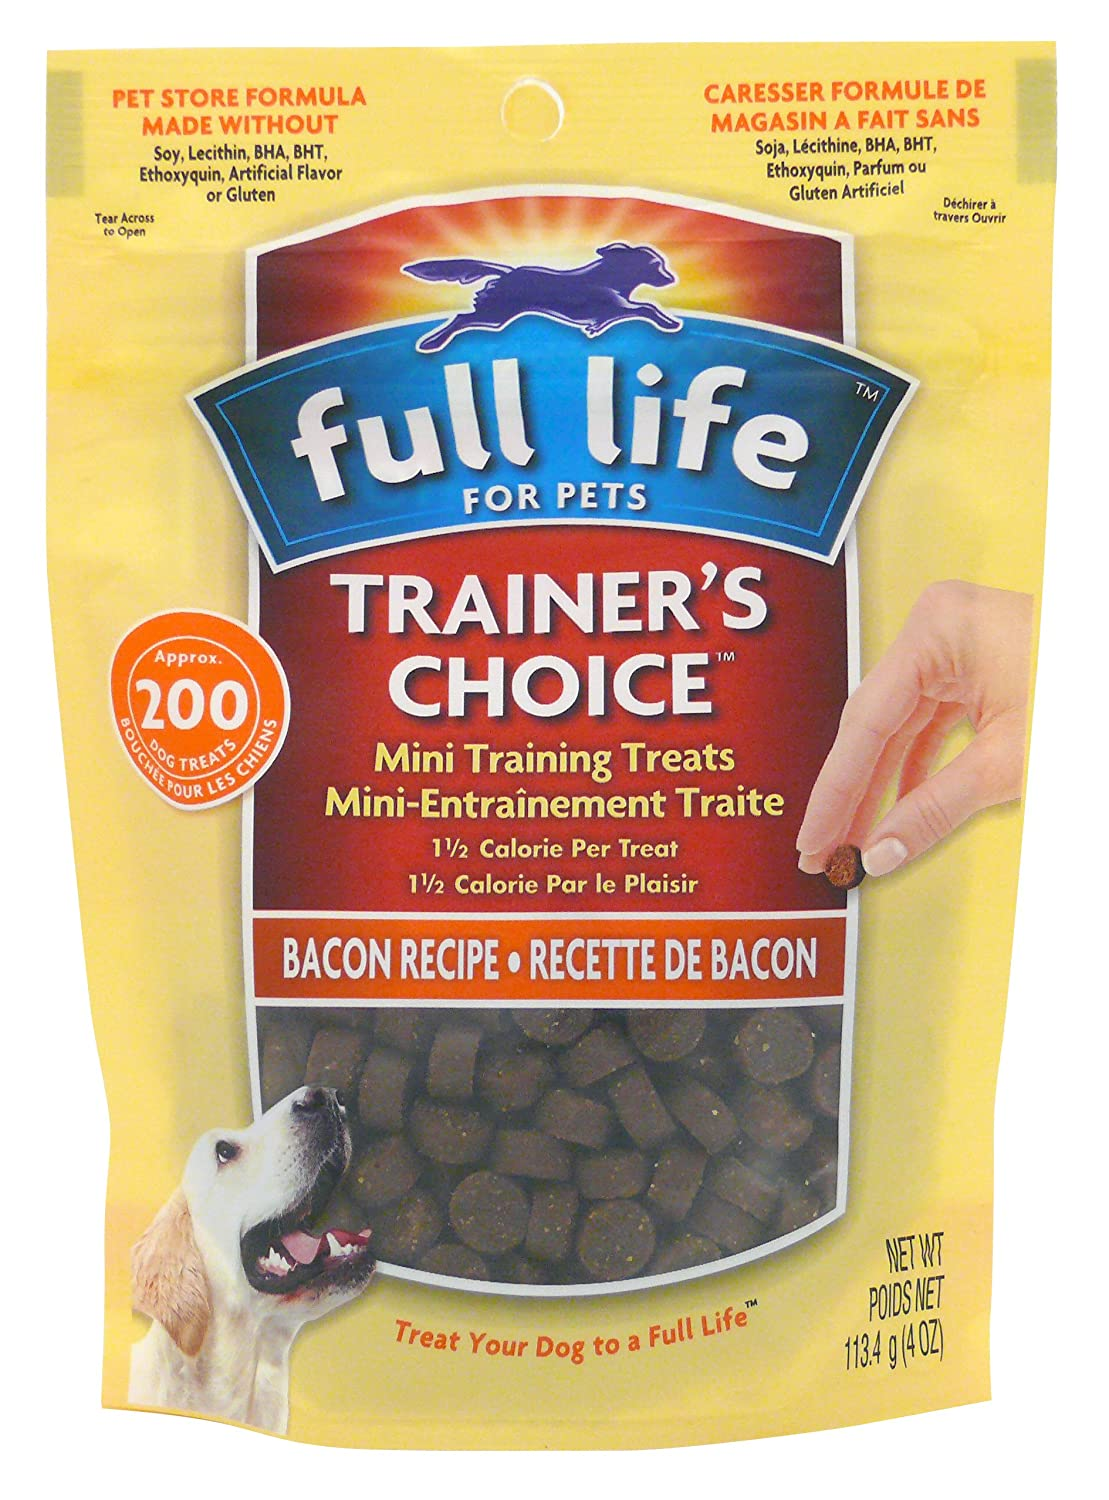 Full Life for Pets Full Lifetrainer's Choice, Bacon 4 oz, 1 Pouch